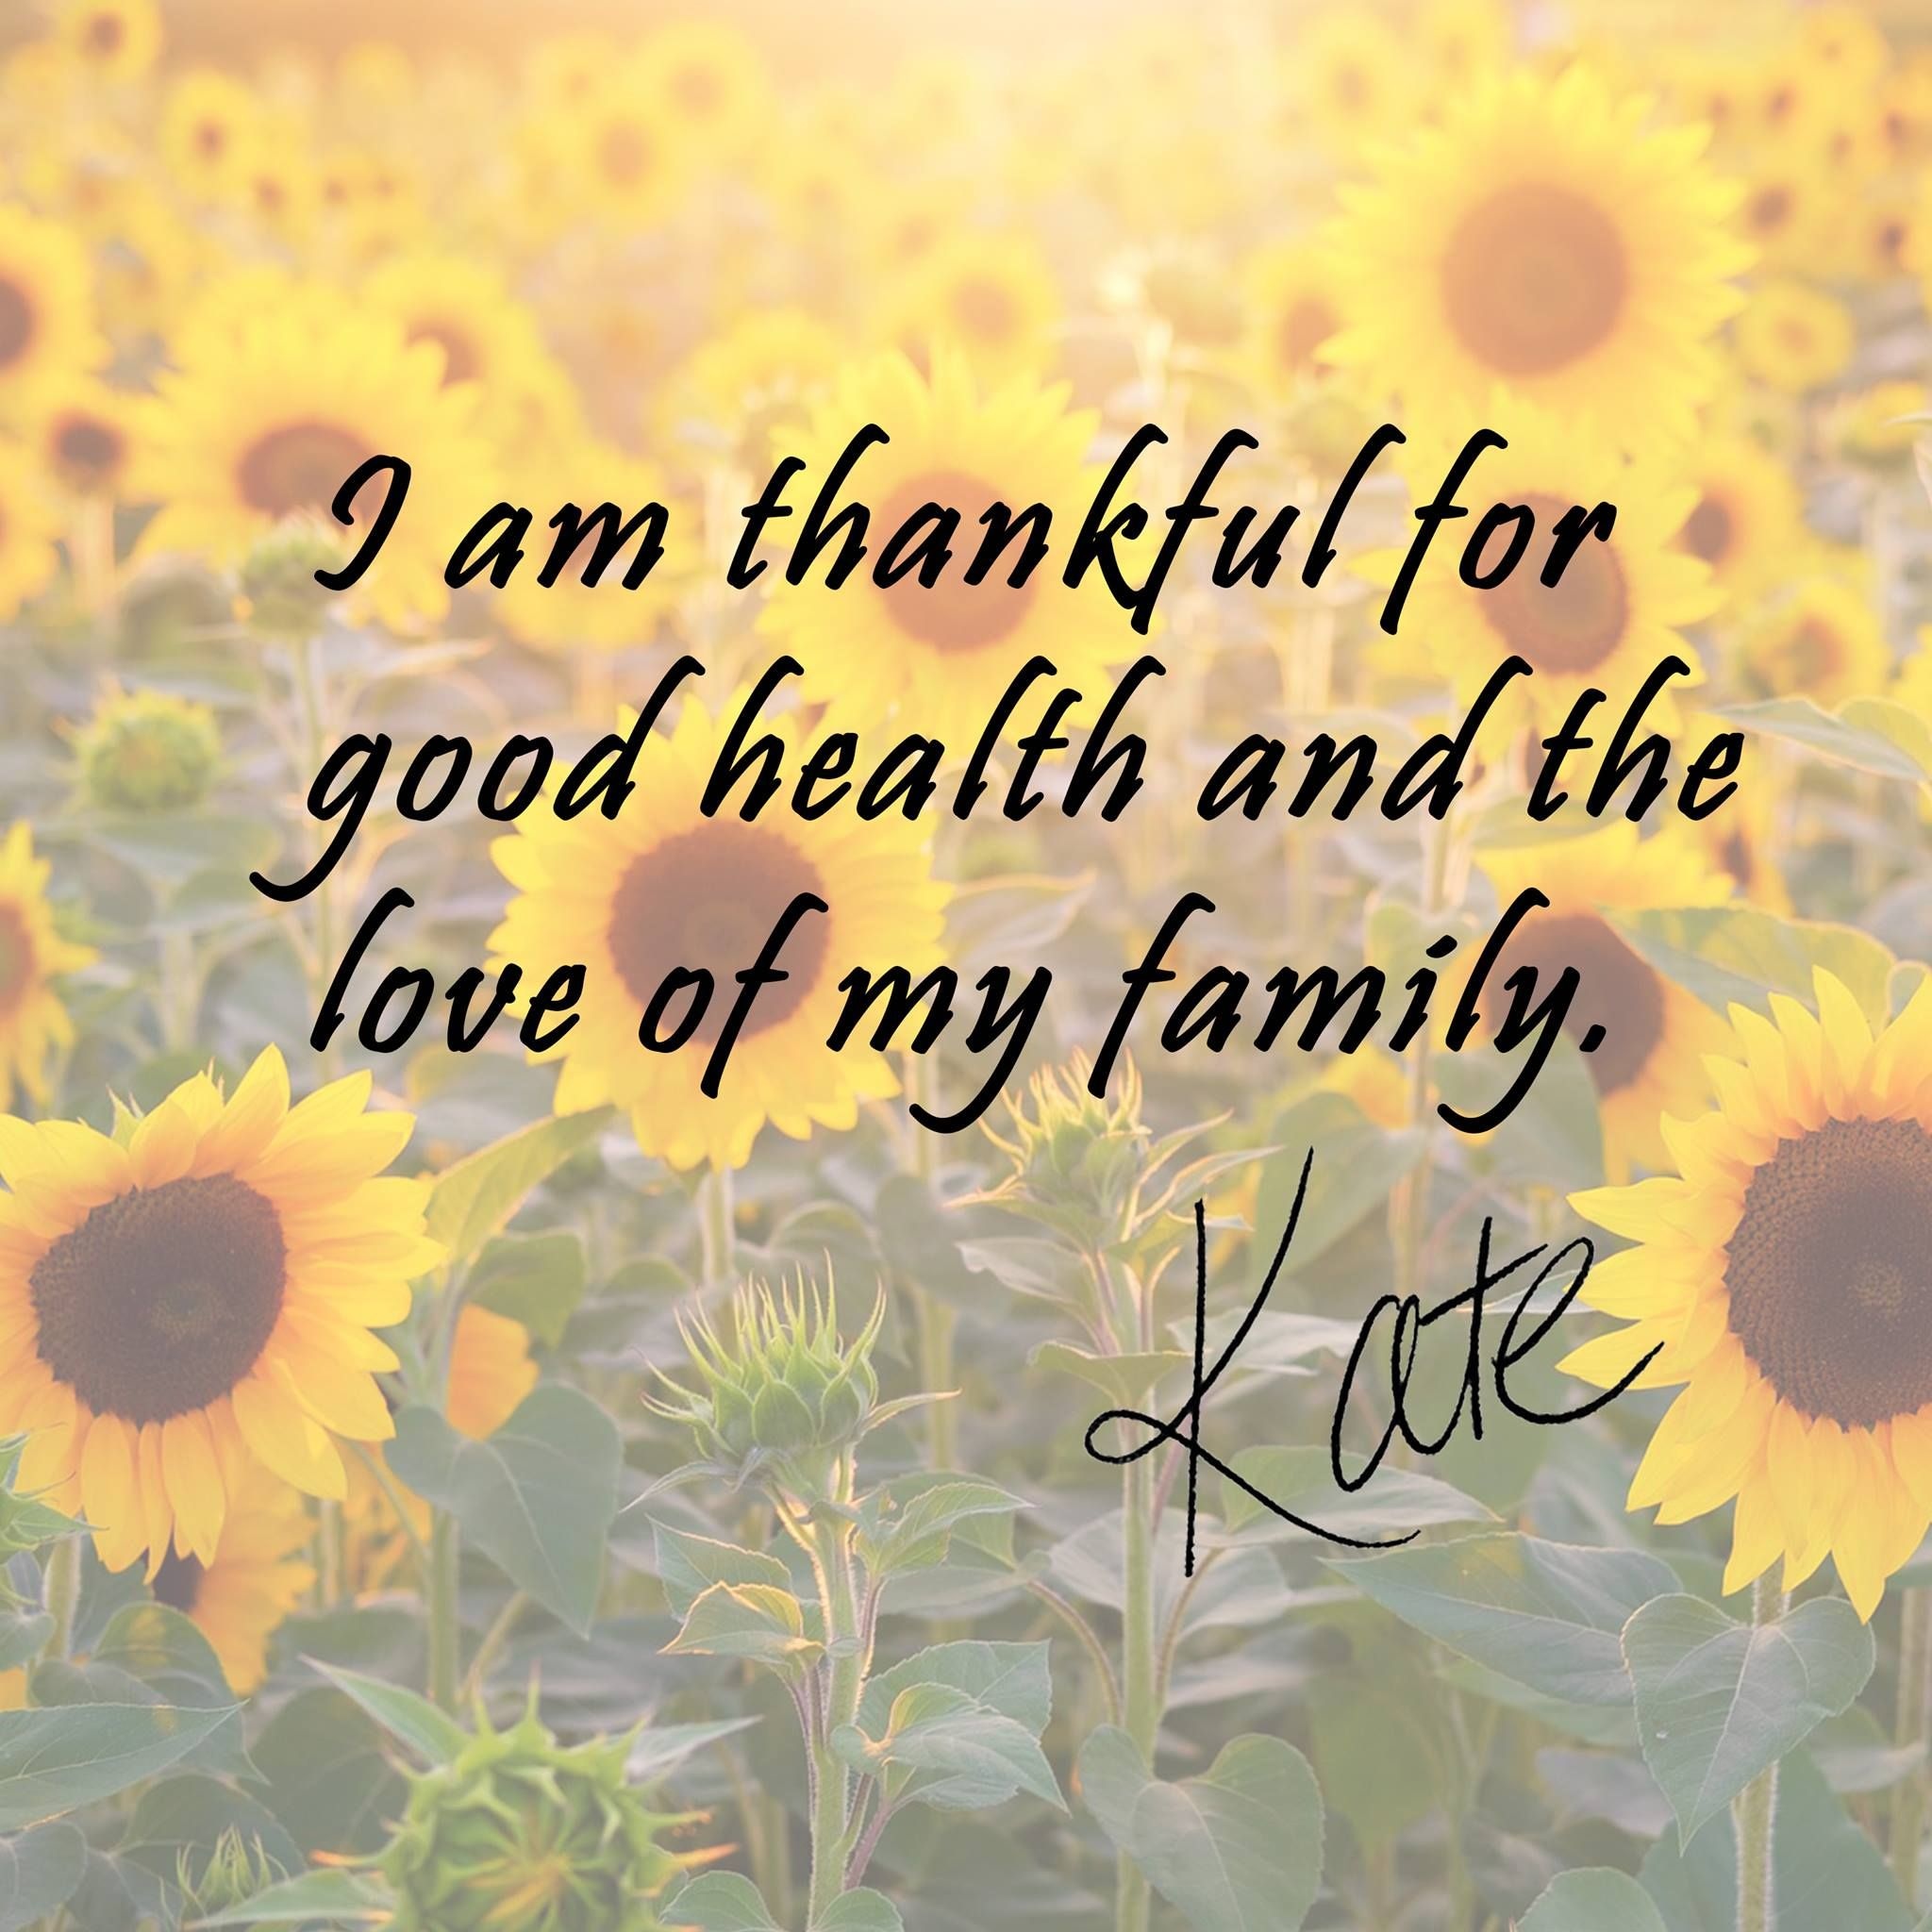 I am thankful for good health and the love of my family